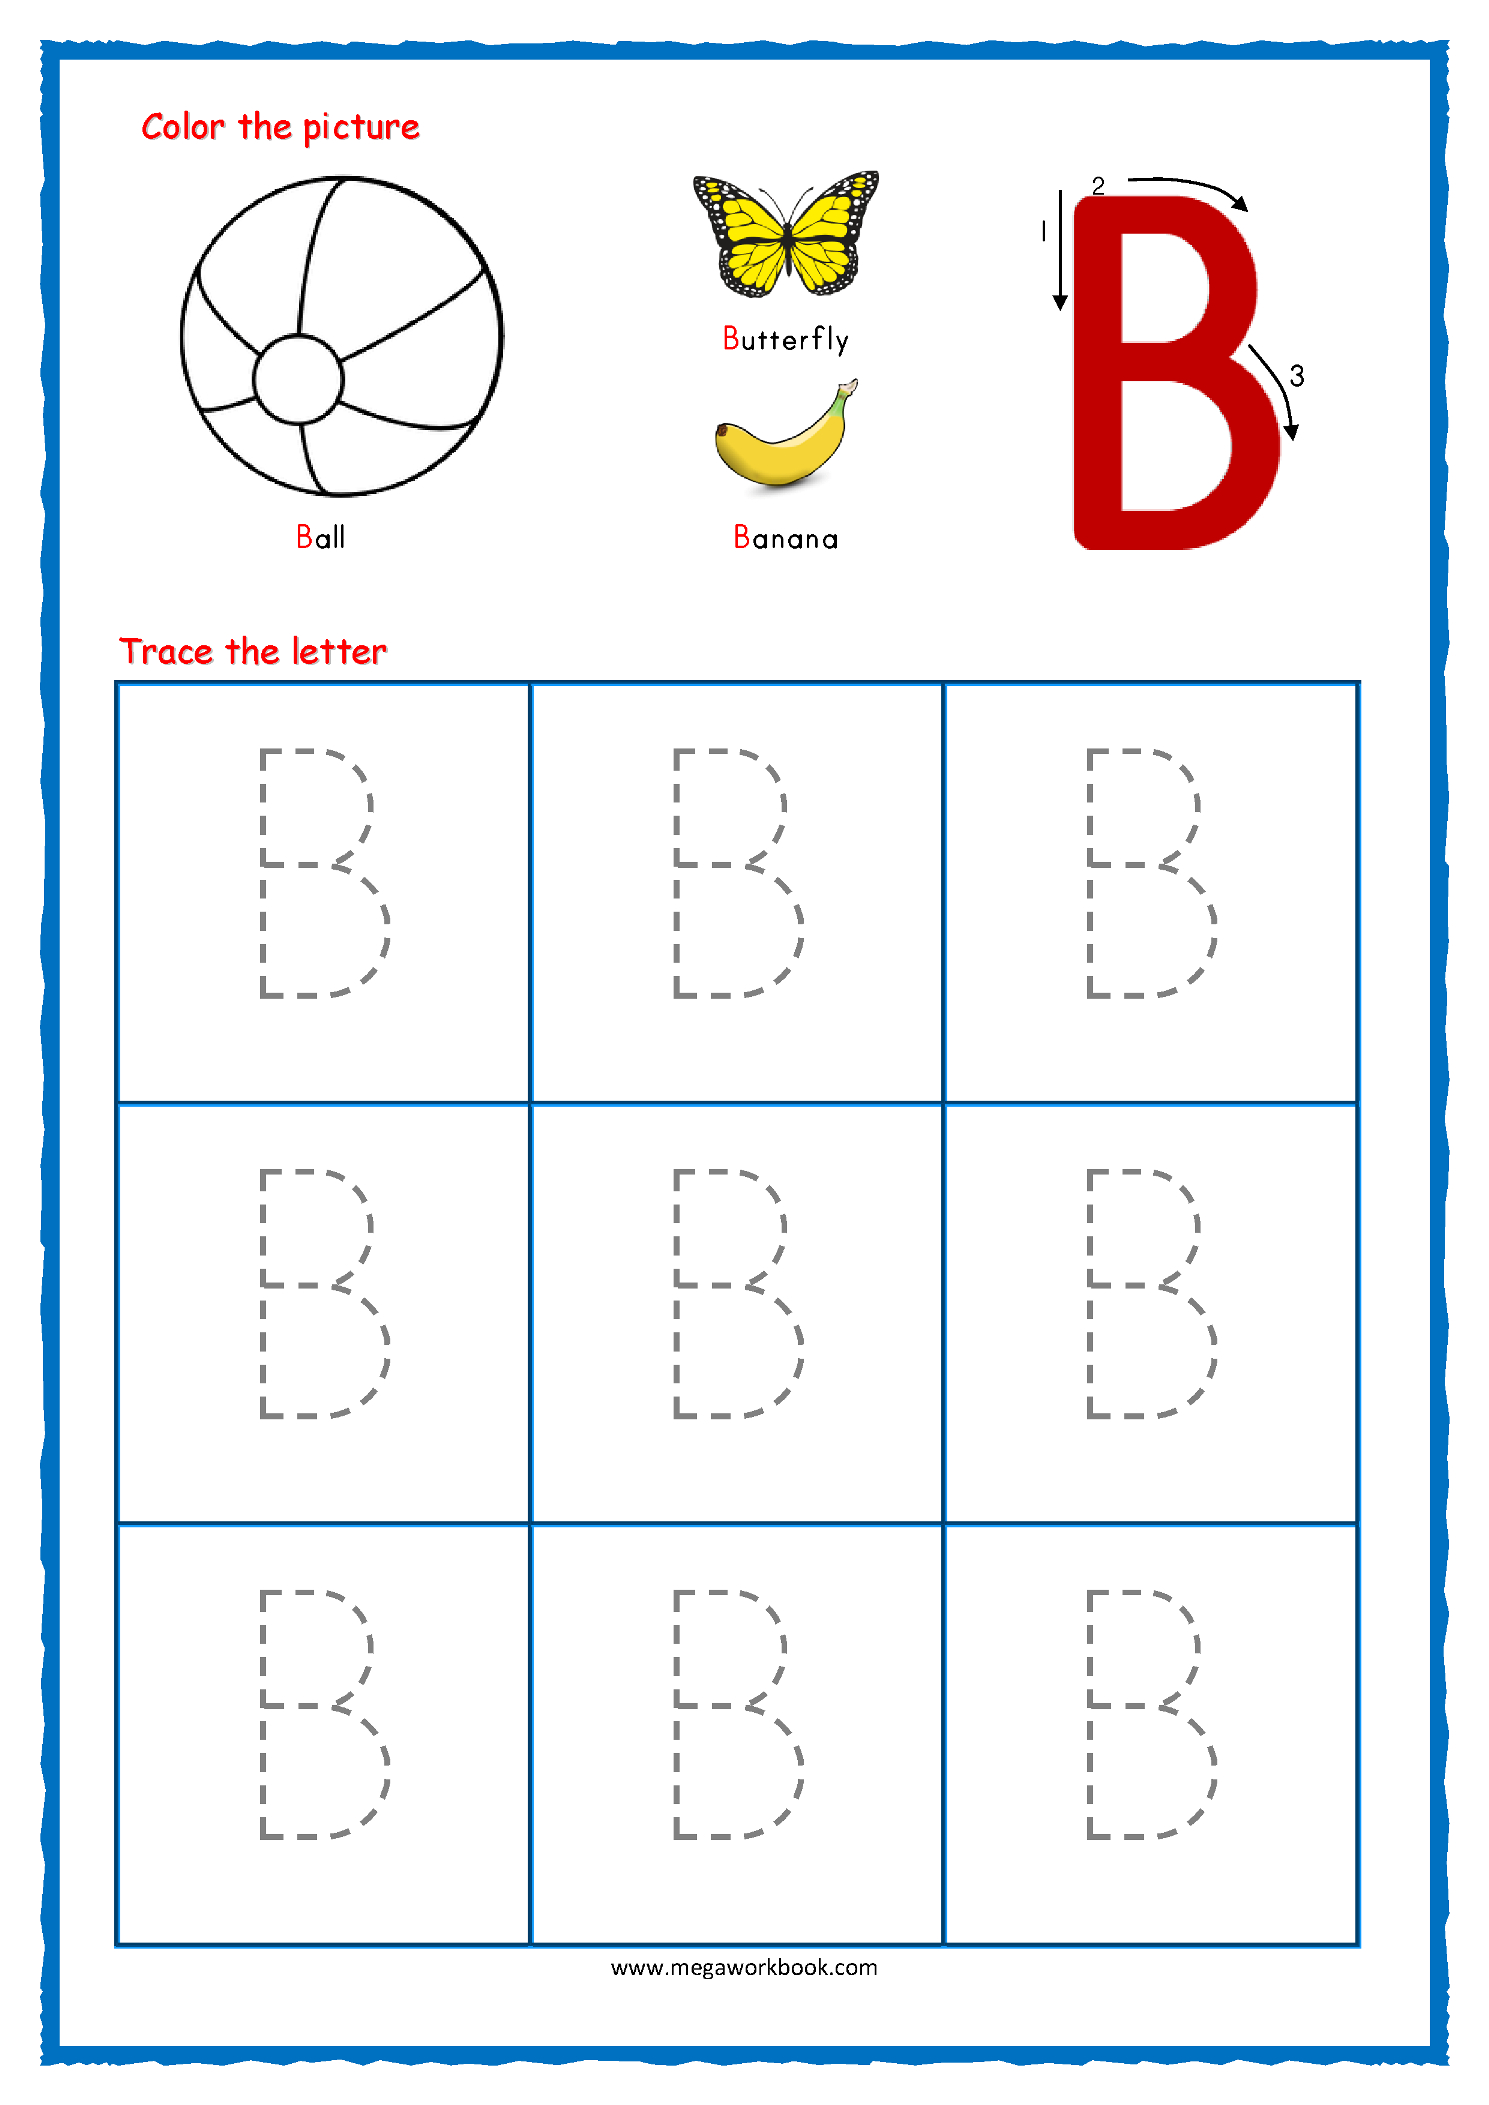 Tracing Letters - Alphabet Tracing - Capital Letters regarding A Letter Tracing Worksheet